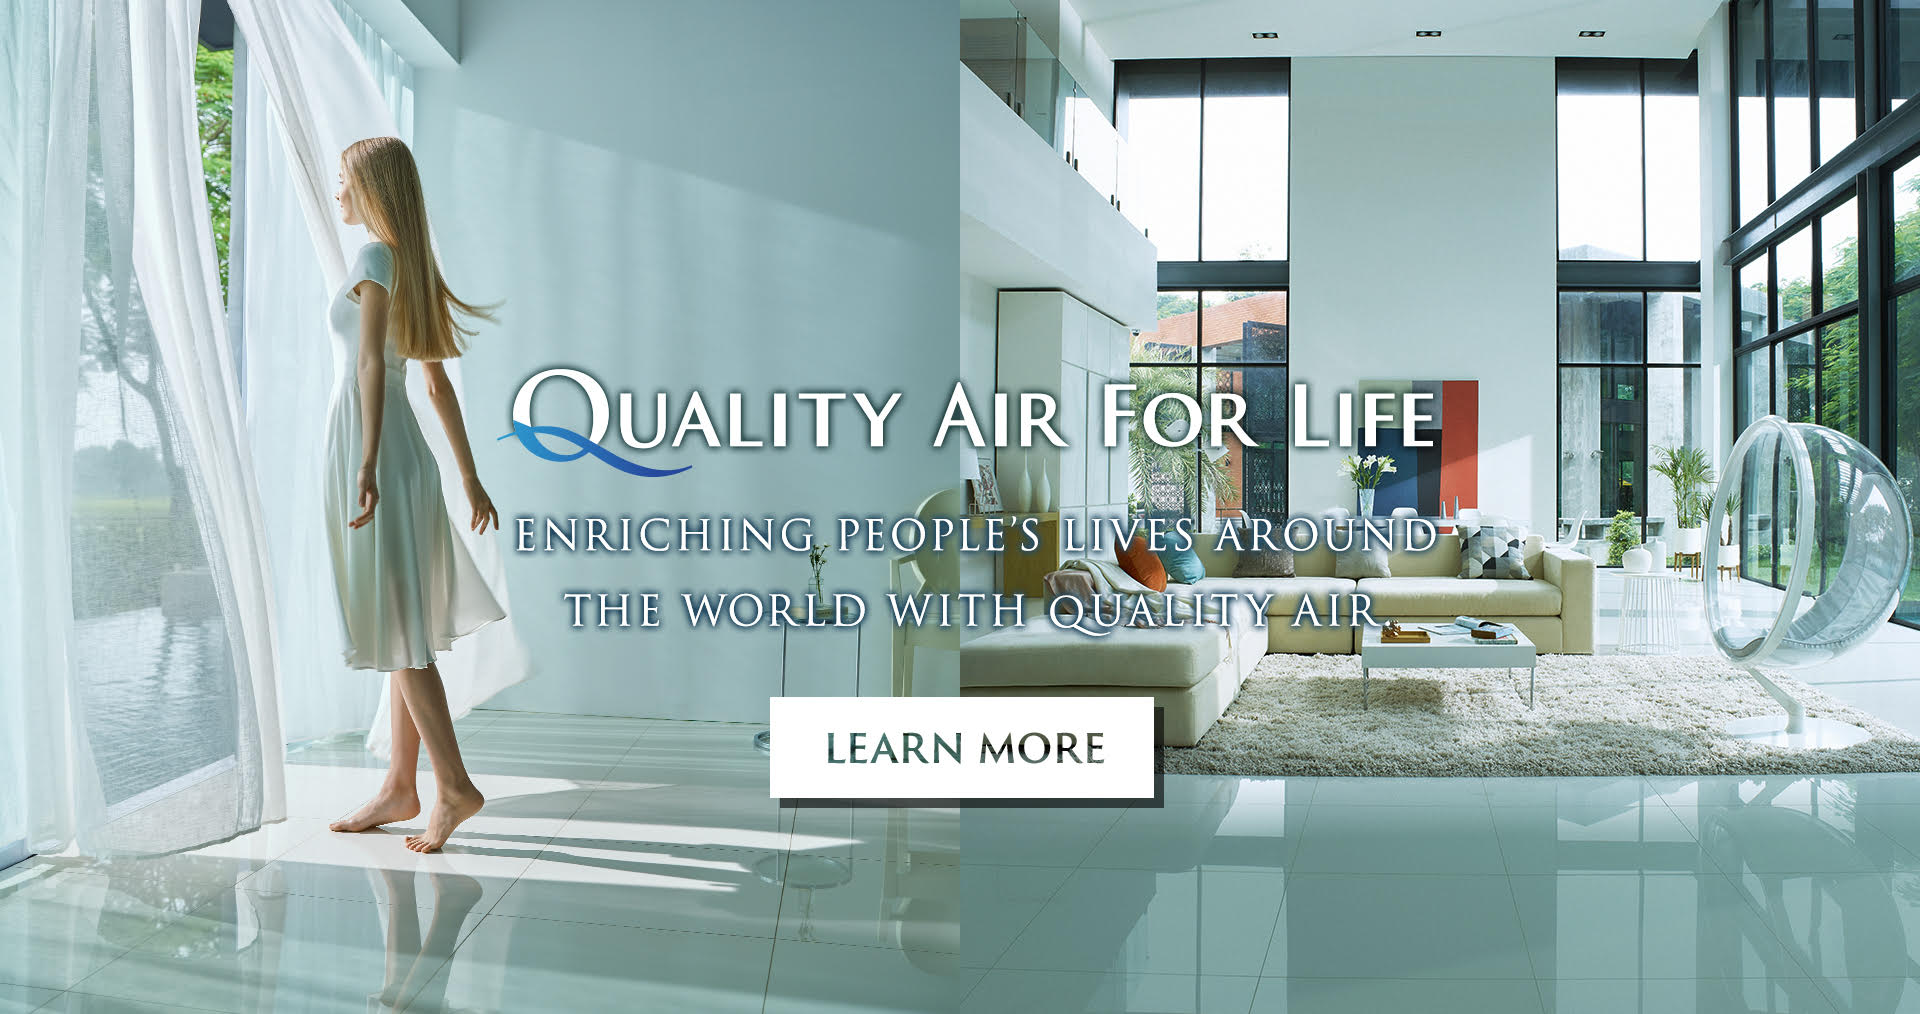 Quality air for life. Enriching people's lives around the world with quality air.